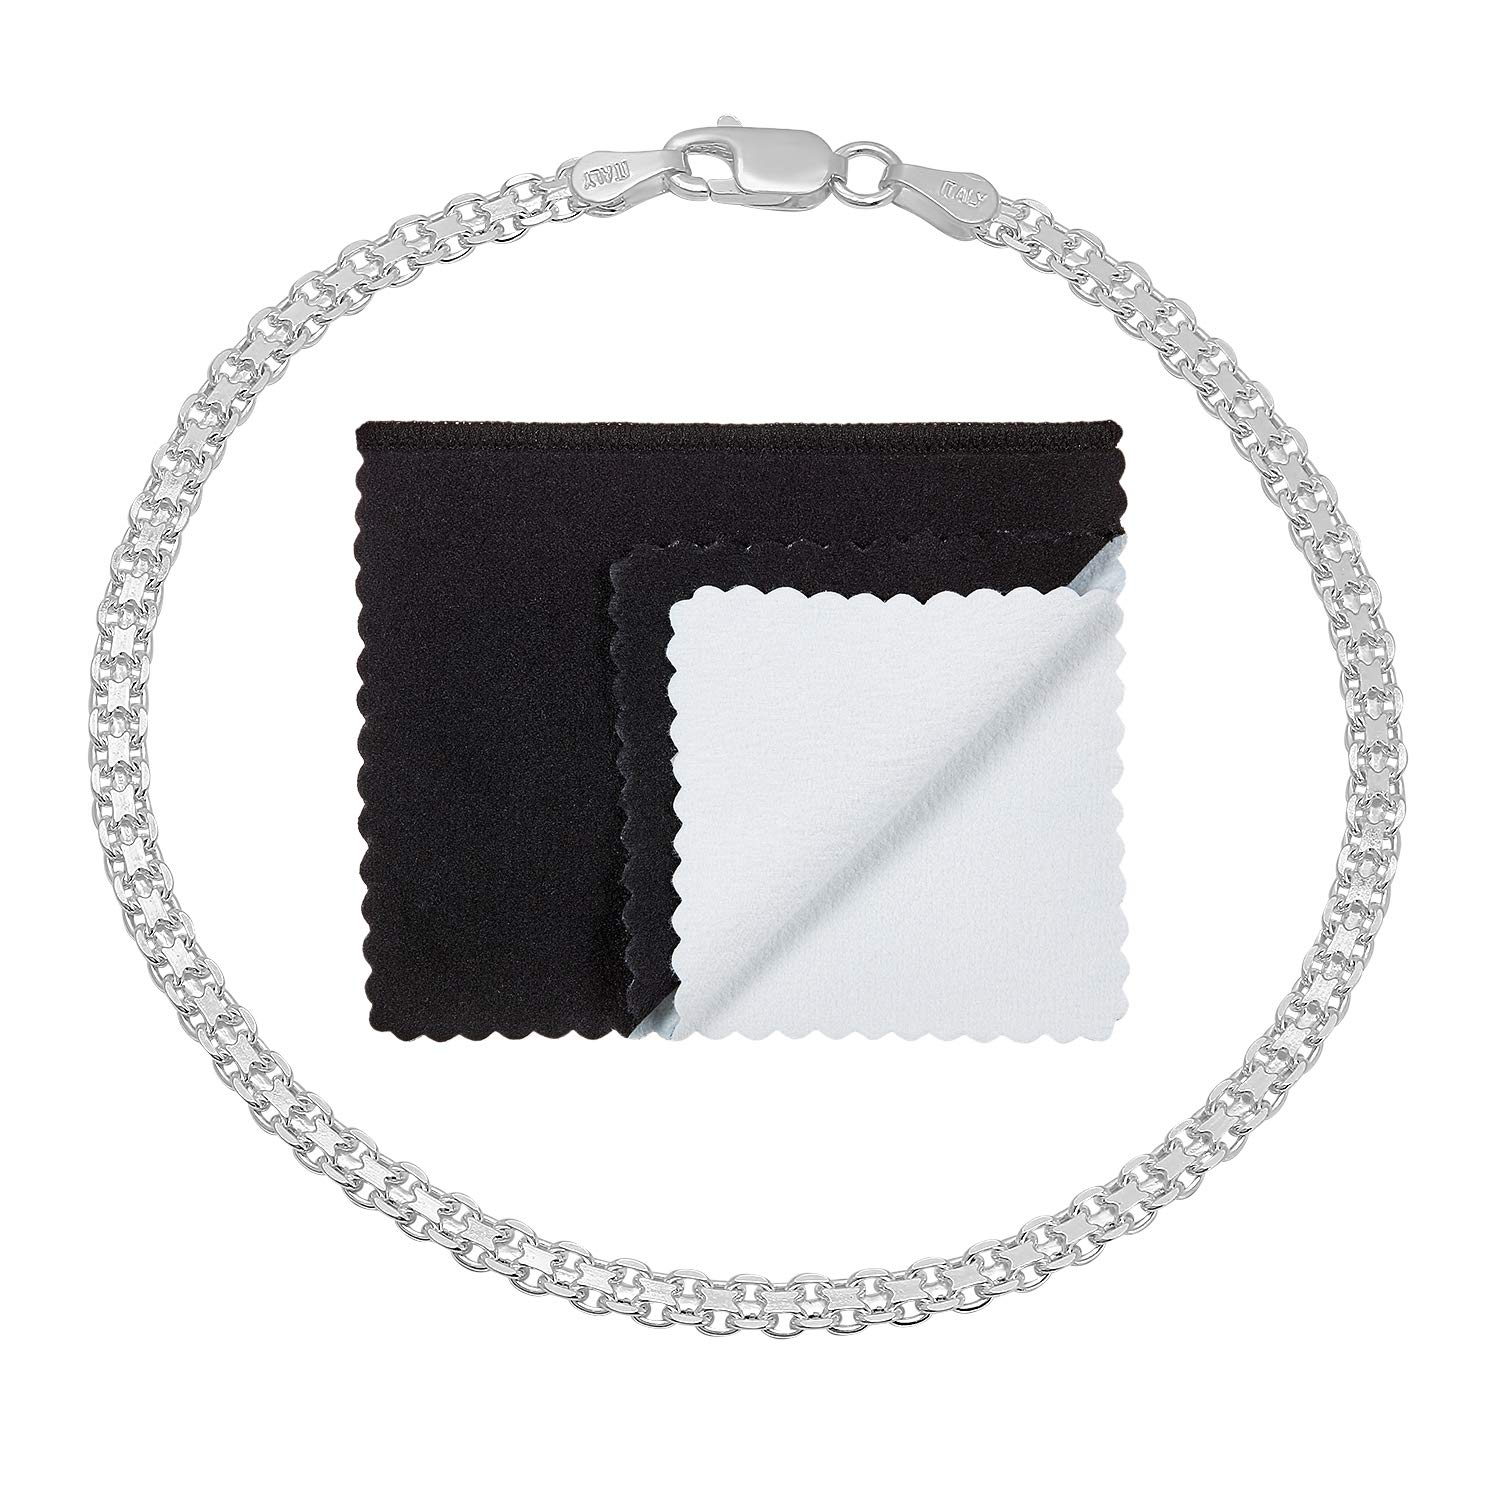 3mm .925 Sterling Silver Nickel-Free Italian Bismark Link Bracelet or Anklet, 10 inches + Cleaning Cloth